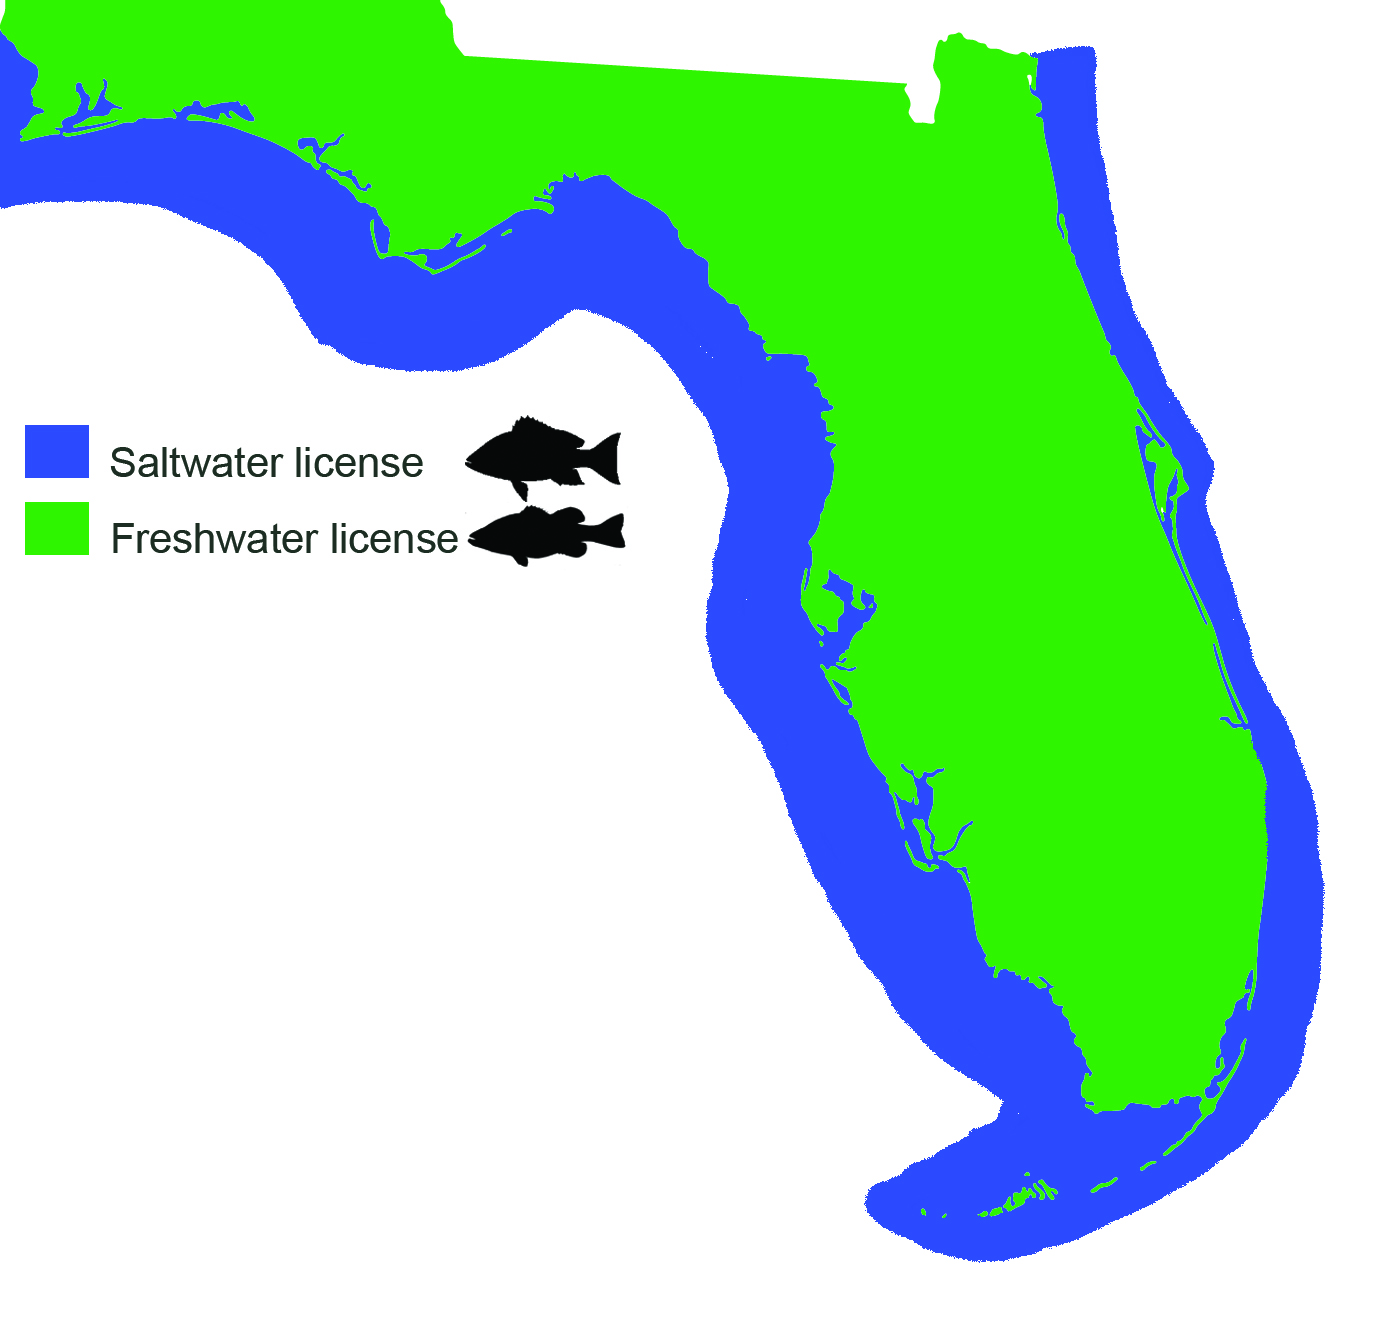 Saltwater vs freshwater fishing licenses in Florida